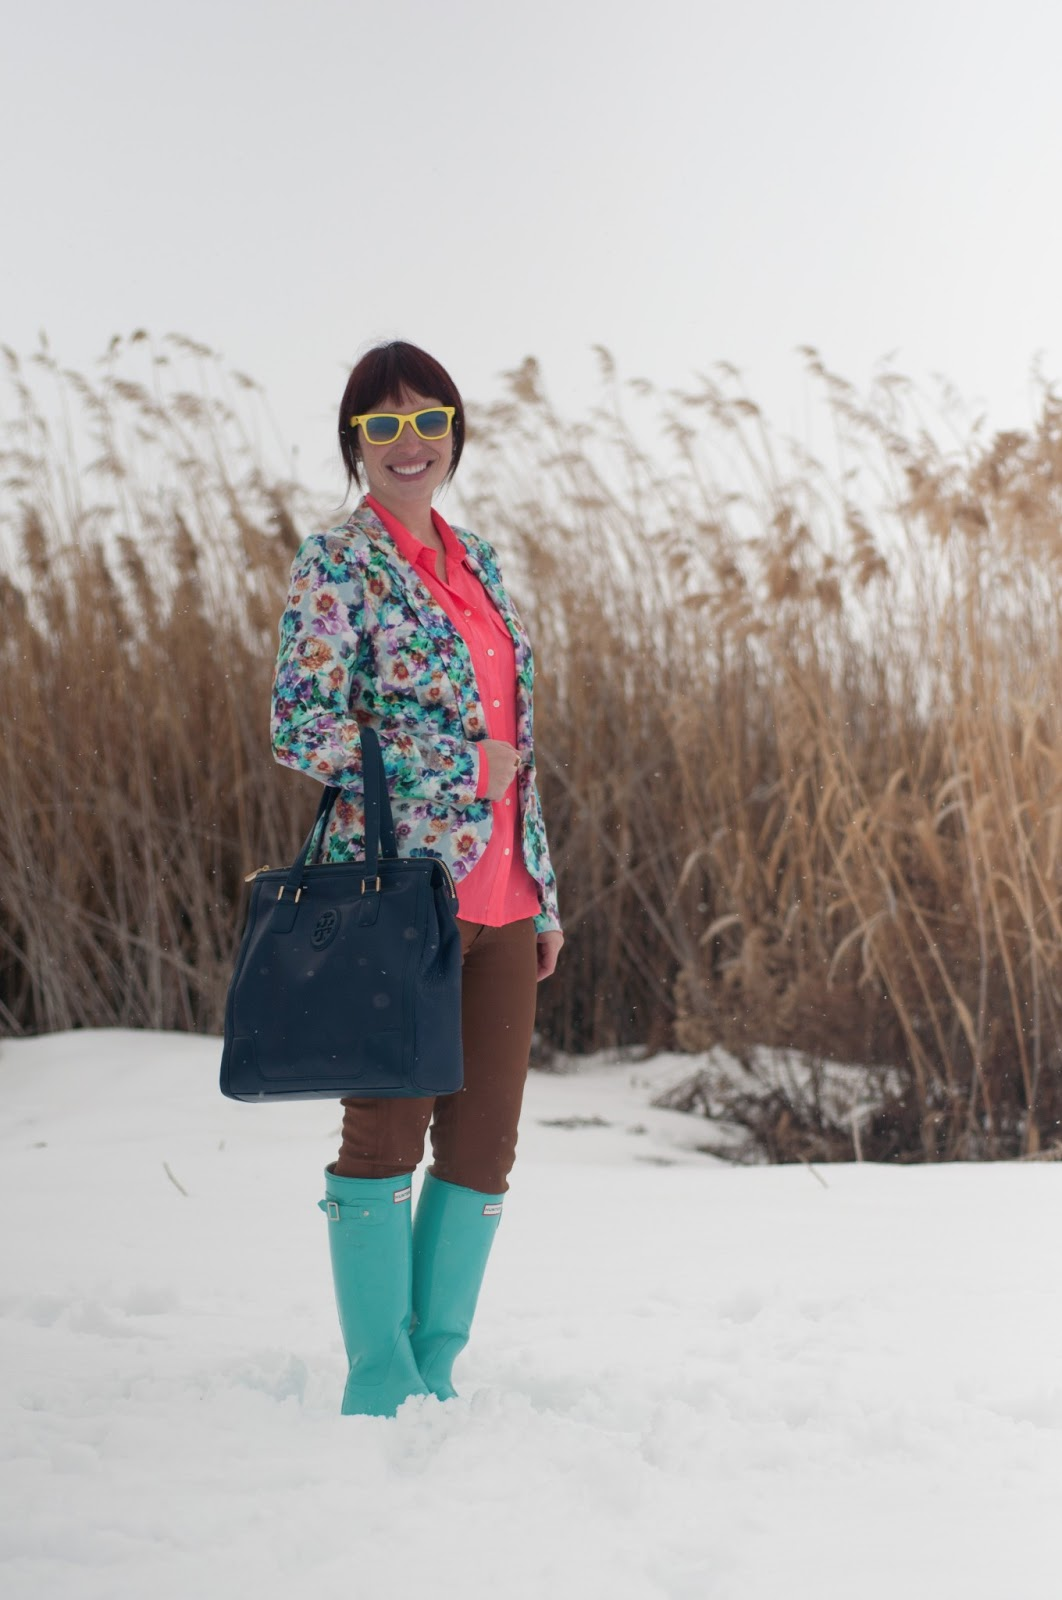 fashion blog, fashion blogger, mens fashion, mens style blog, blazer, ootd, floral, floral blazer, blue, pink, teal, hot pink, floral print, floral clothing, nordstrom, jcrew, jcrew blouse, silk blouse, blouse, waxed jeans, waxed pants, citizens of humanity, hunter, hunter boots, rain boots, rain boot, teal hunter boot, blue hunter boots, glossy boots, boot, glossy hunter boot, tory burch, leather purse, navy purse, leather purse, navy leather, ray ban, ray bans, wayfer, wayfer ray ban, earrings, bow earrings, gold earrings, womens style, fashion, style, fashion blogger, womens fashion blogger, neon yellow, snow, reeds, personal style, outfit post, style post, neon sunglasses, ray ban sunglasses